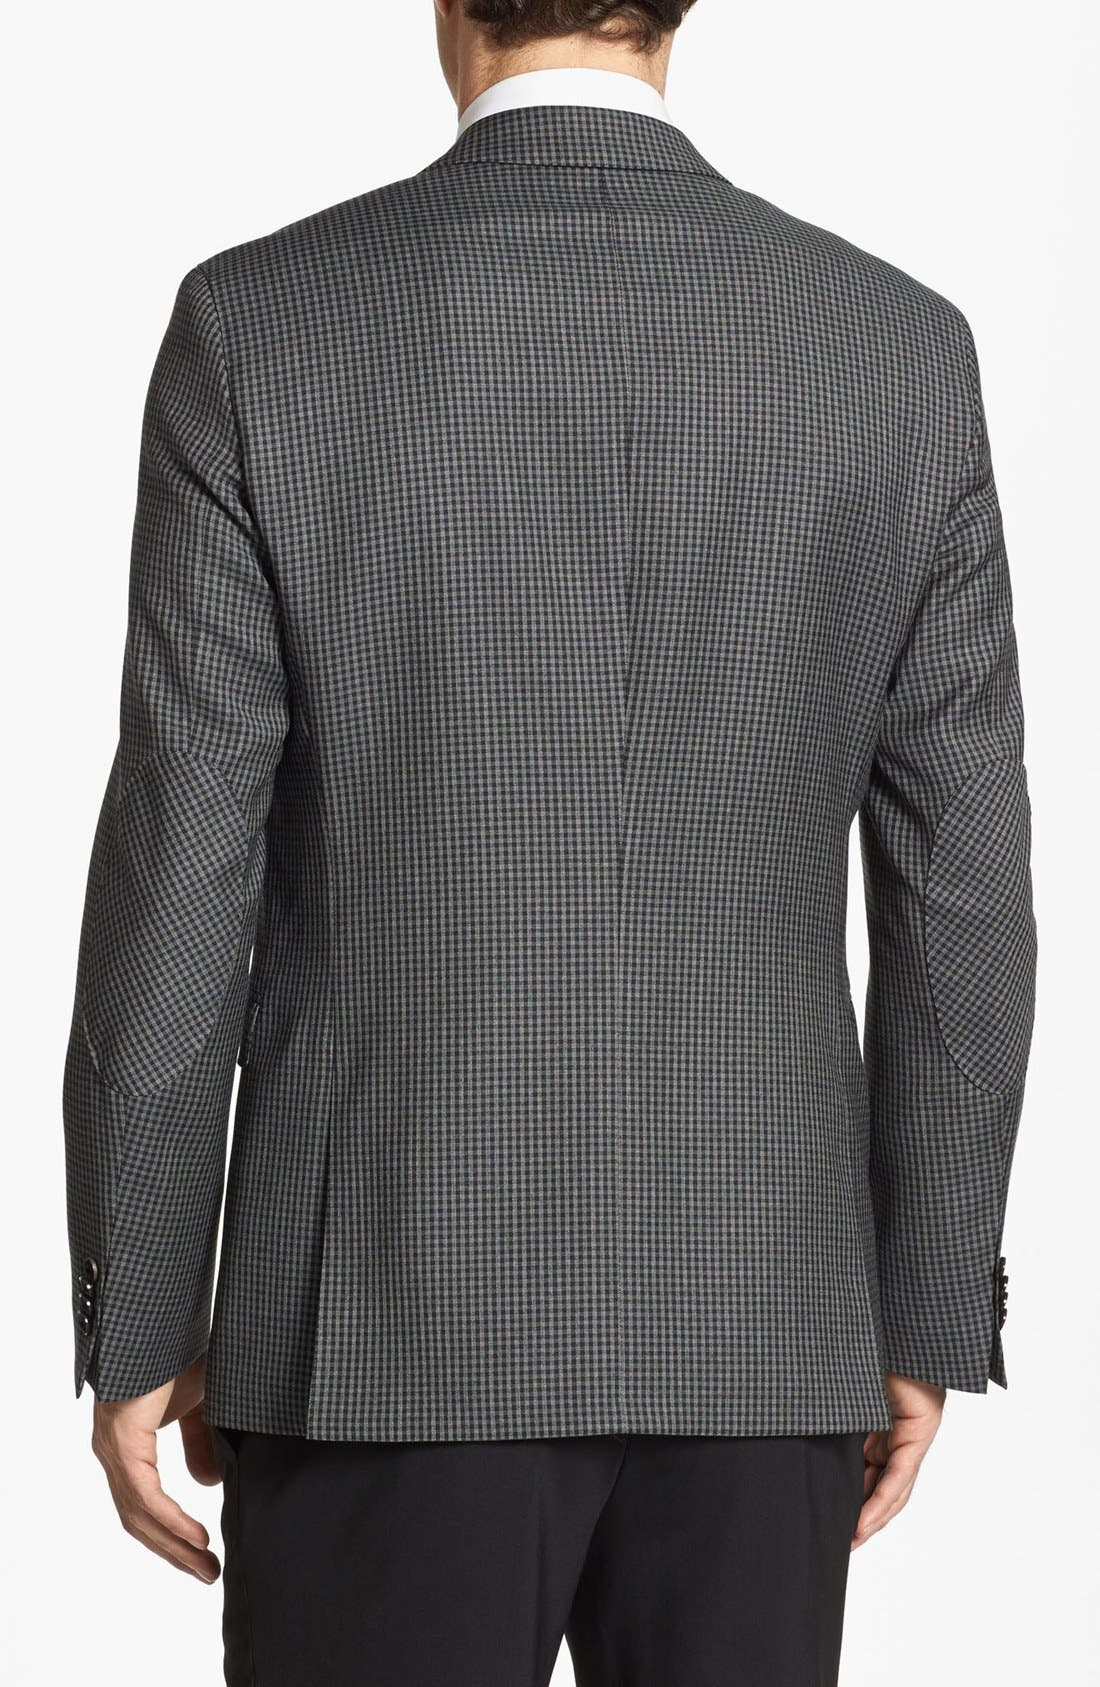 Alternate Image 2  - BOSS HUGO BOSS 'Rhett' Extra Trim Fit Sportcoat